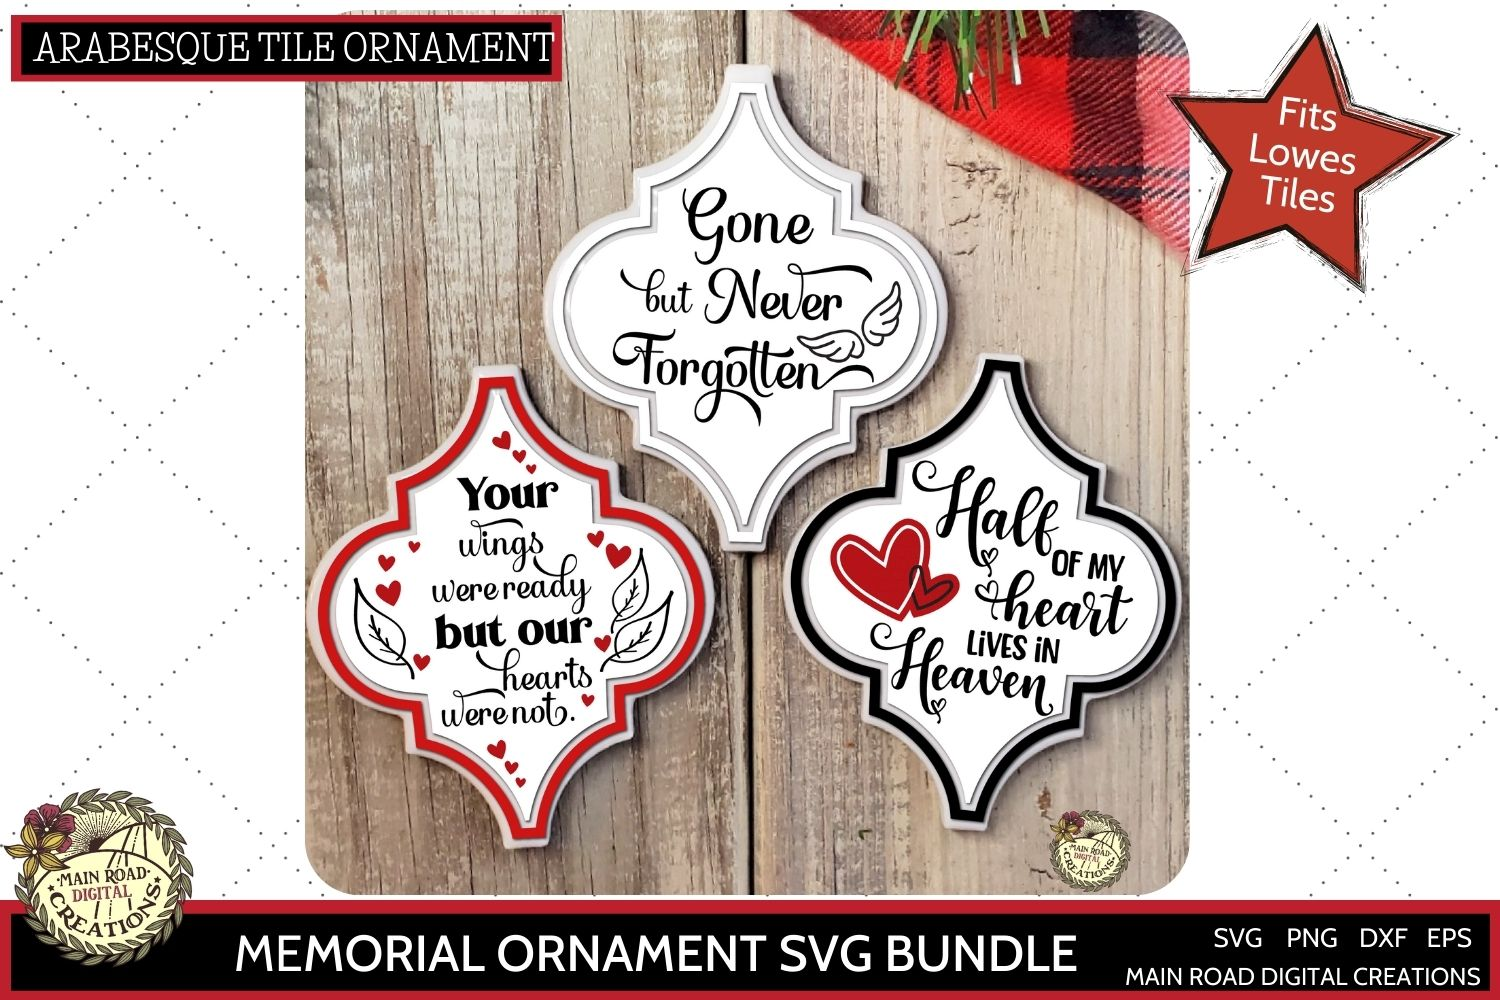 etsy shop, arabesque ornament svg, memorial ornament design, your wings were ready but our hearts were not, memorial quotes, memory ornament svg